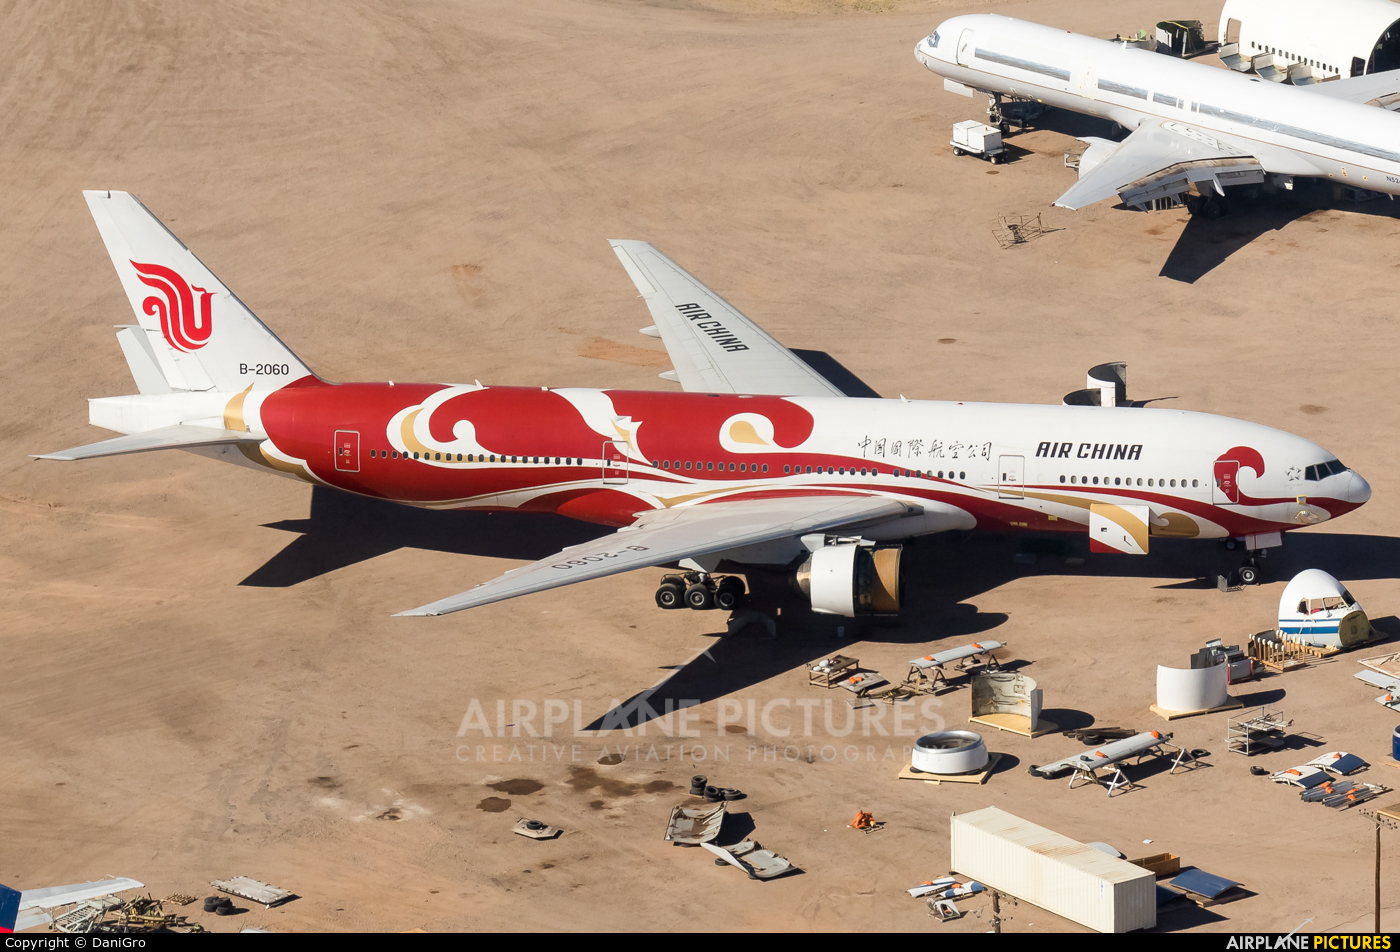 Air China B-2060 aircraft at Marana/Pinal Air Park